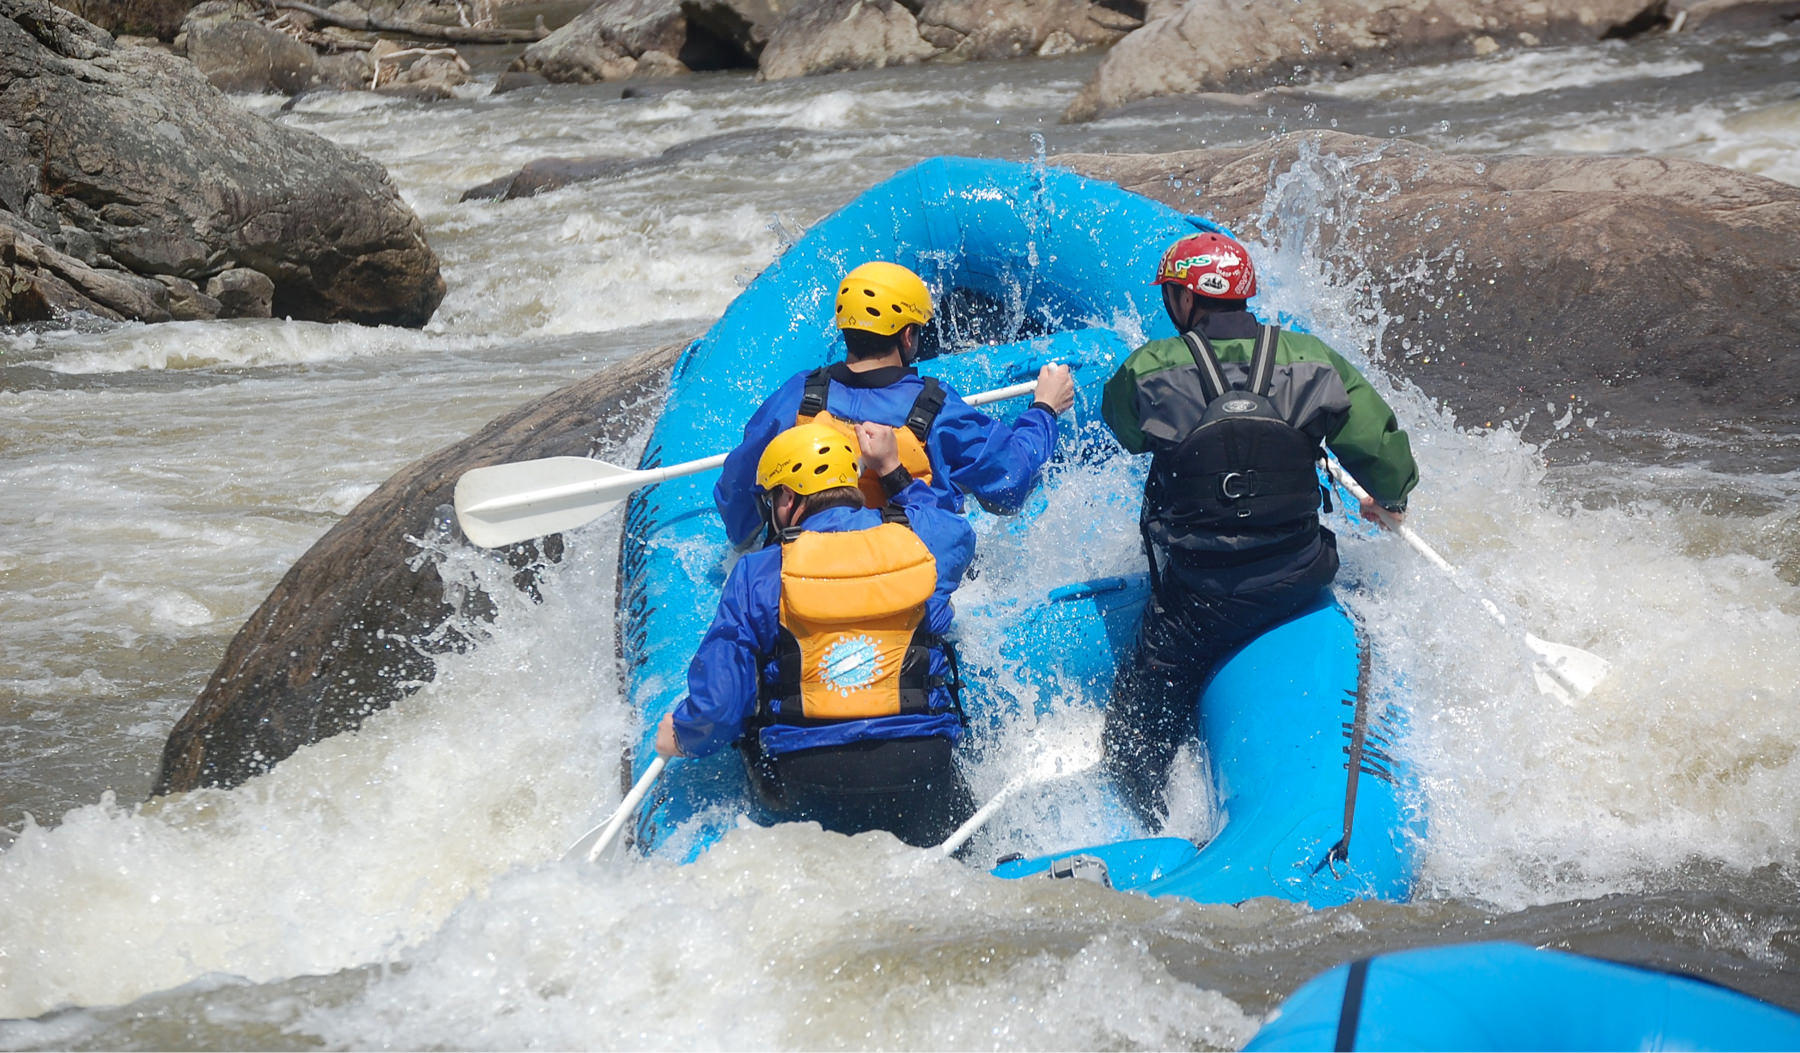 Rafting for any skill level